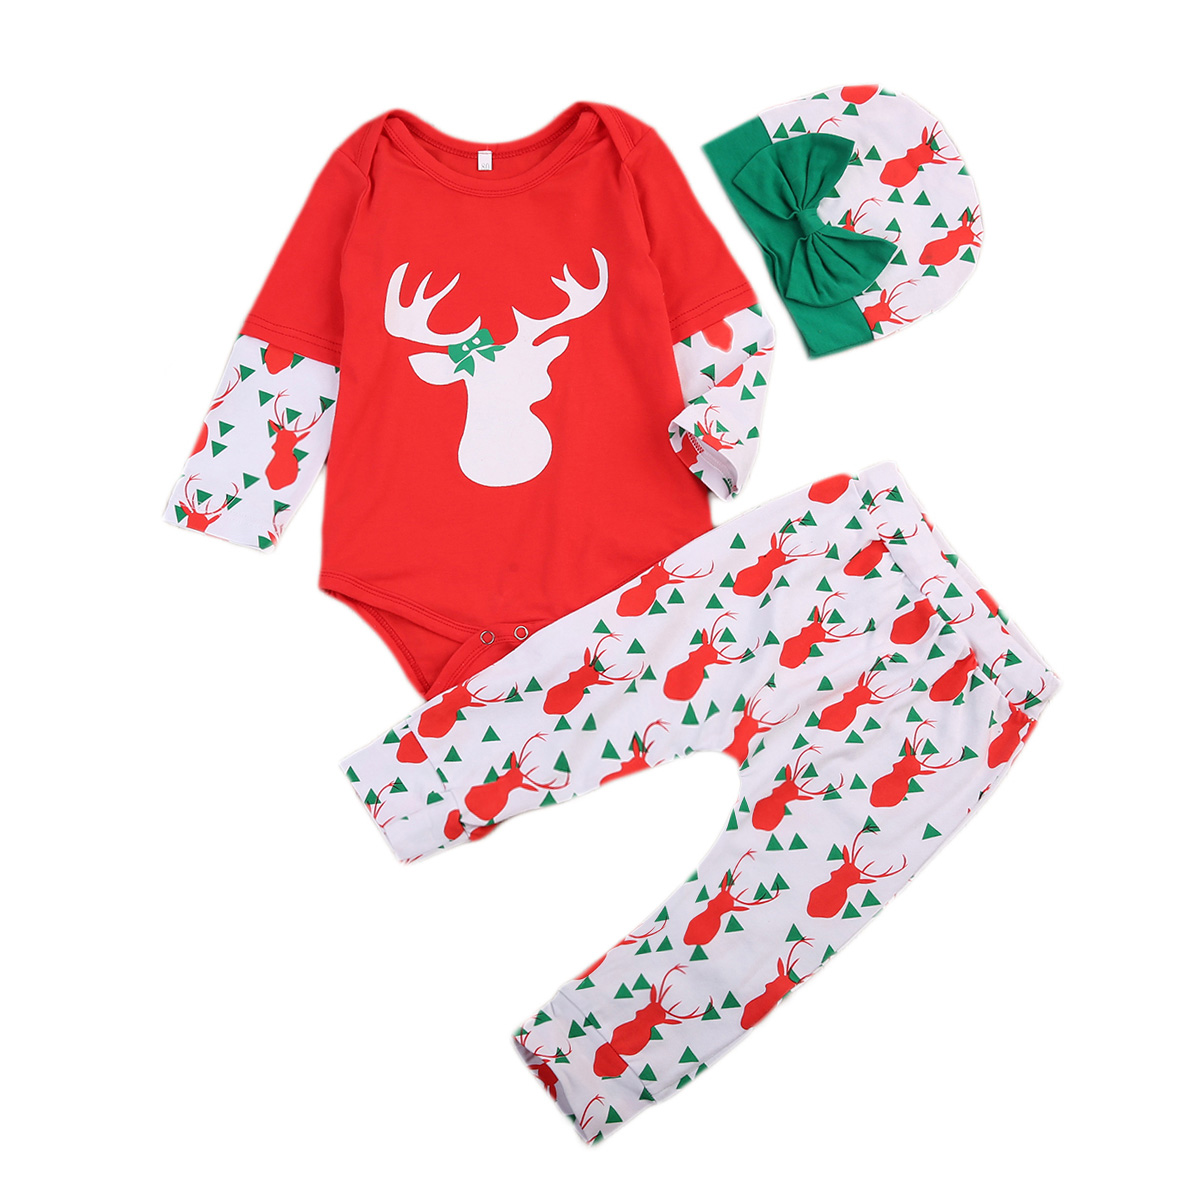 Cute Newborn Baby Boy Girl Xmas Tops Romper Pants Hats 3Pcs Outfits Set Clothes Long Sleeve Red Christmas Clothing Sets 0-24M